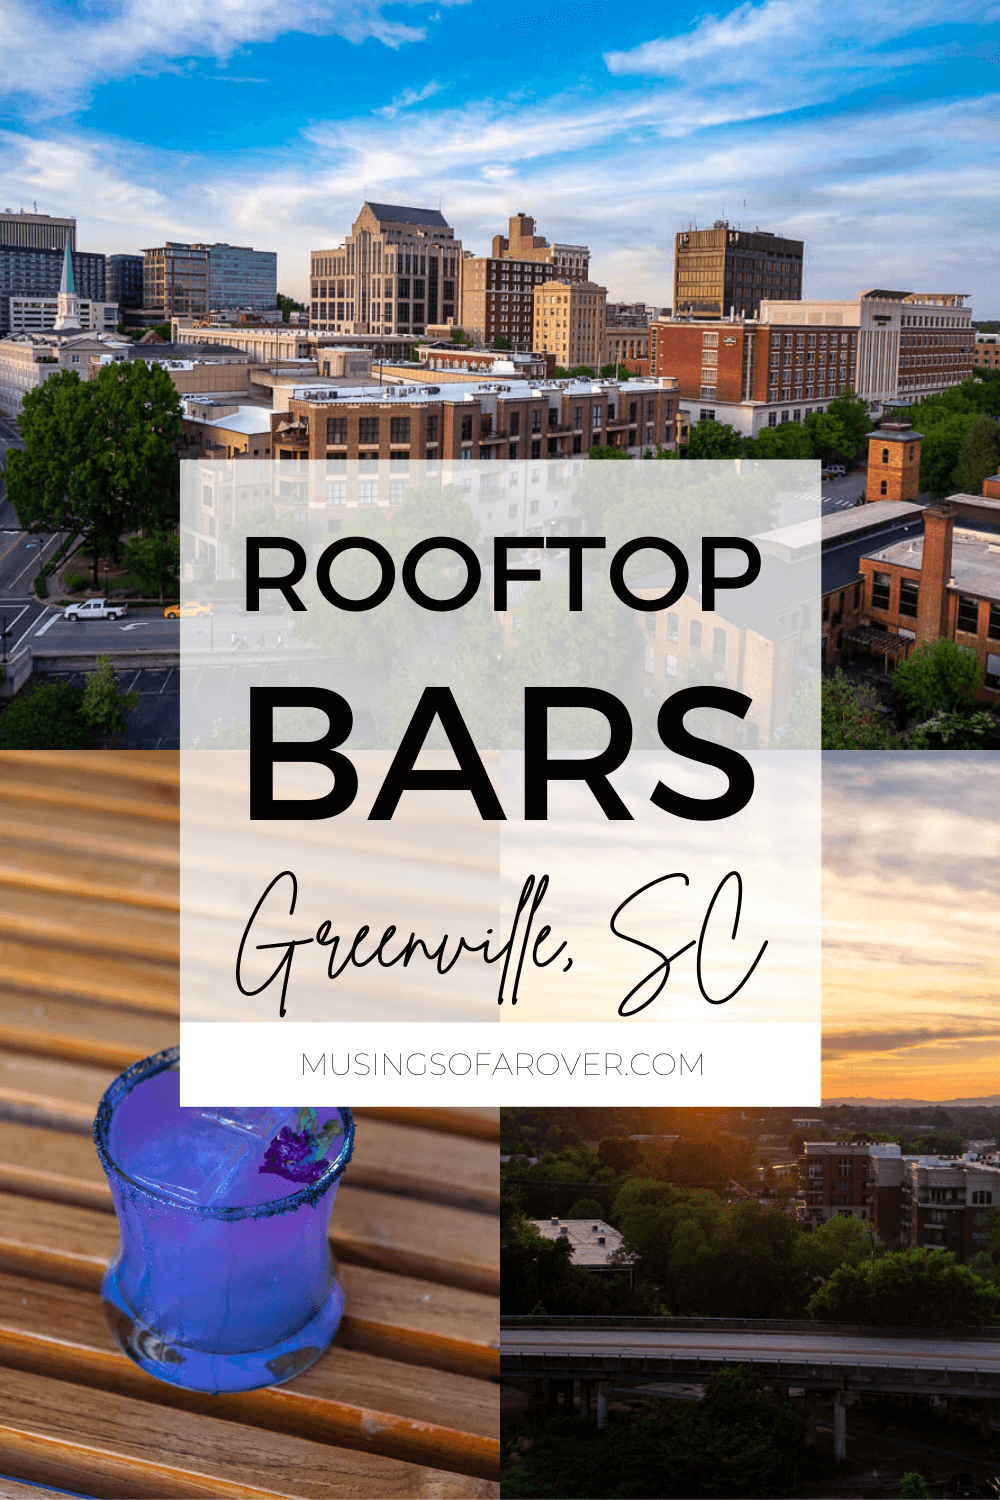 Discover the best rooftop bars in Greenville, SC! Find out which ones serve food and which ones are dog friendly.